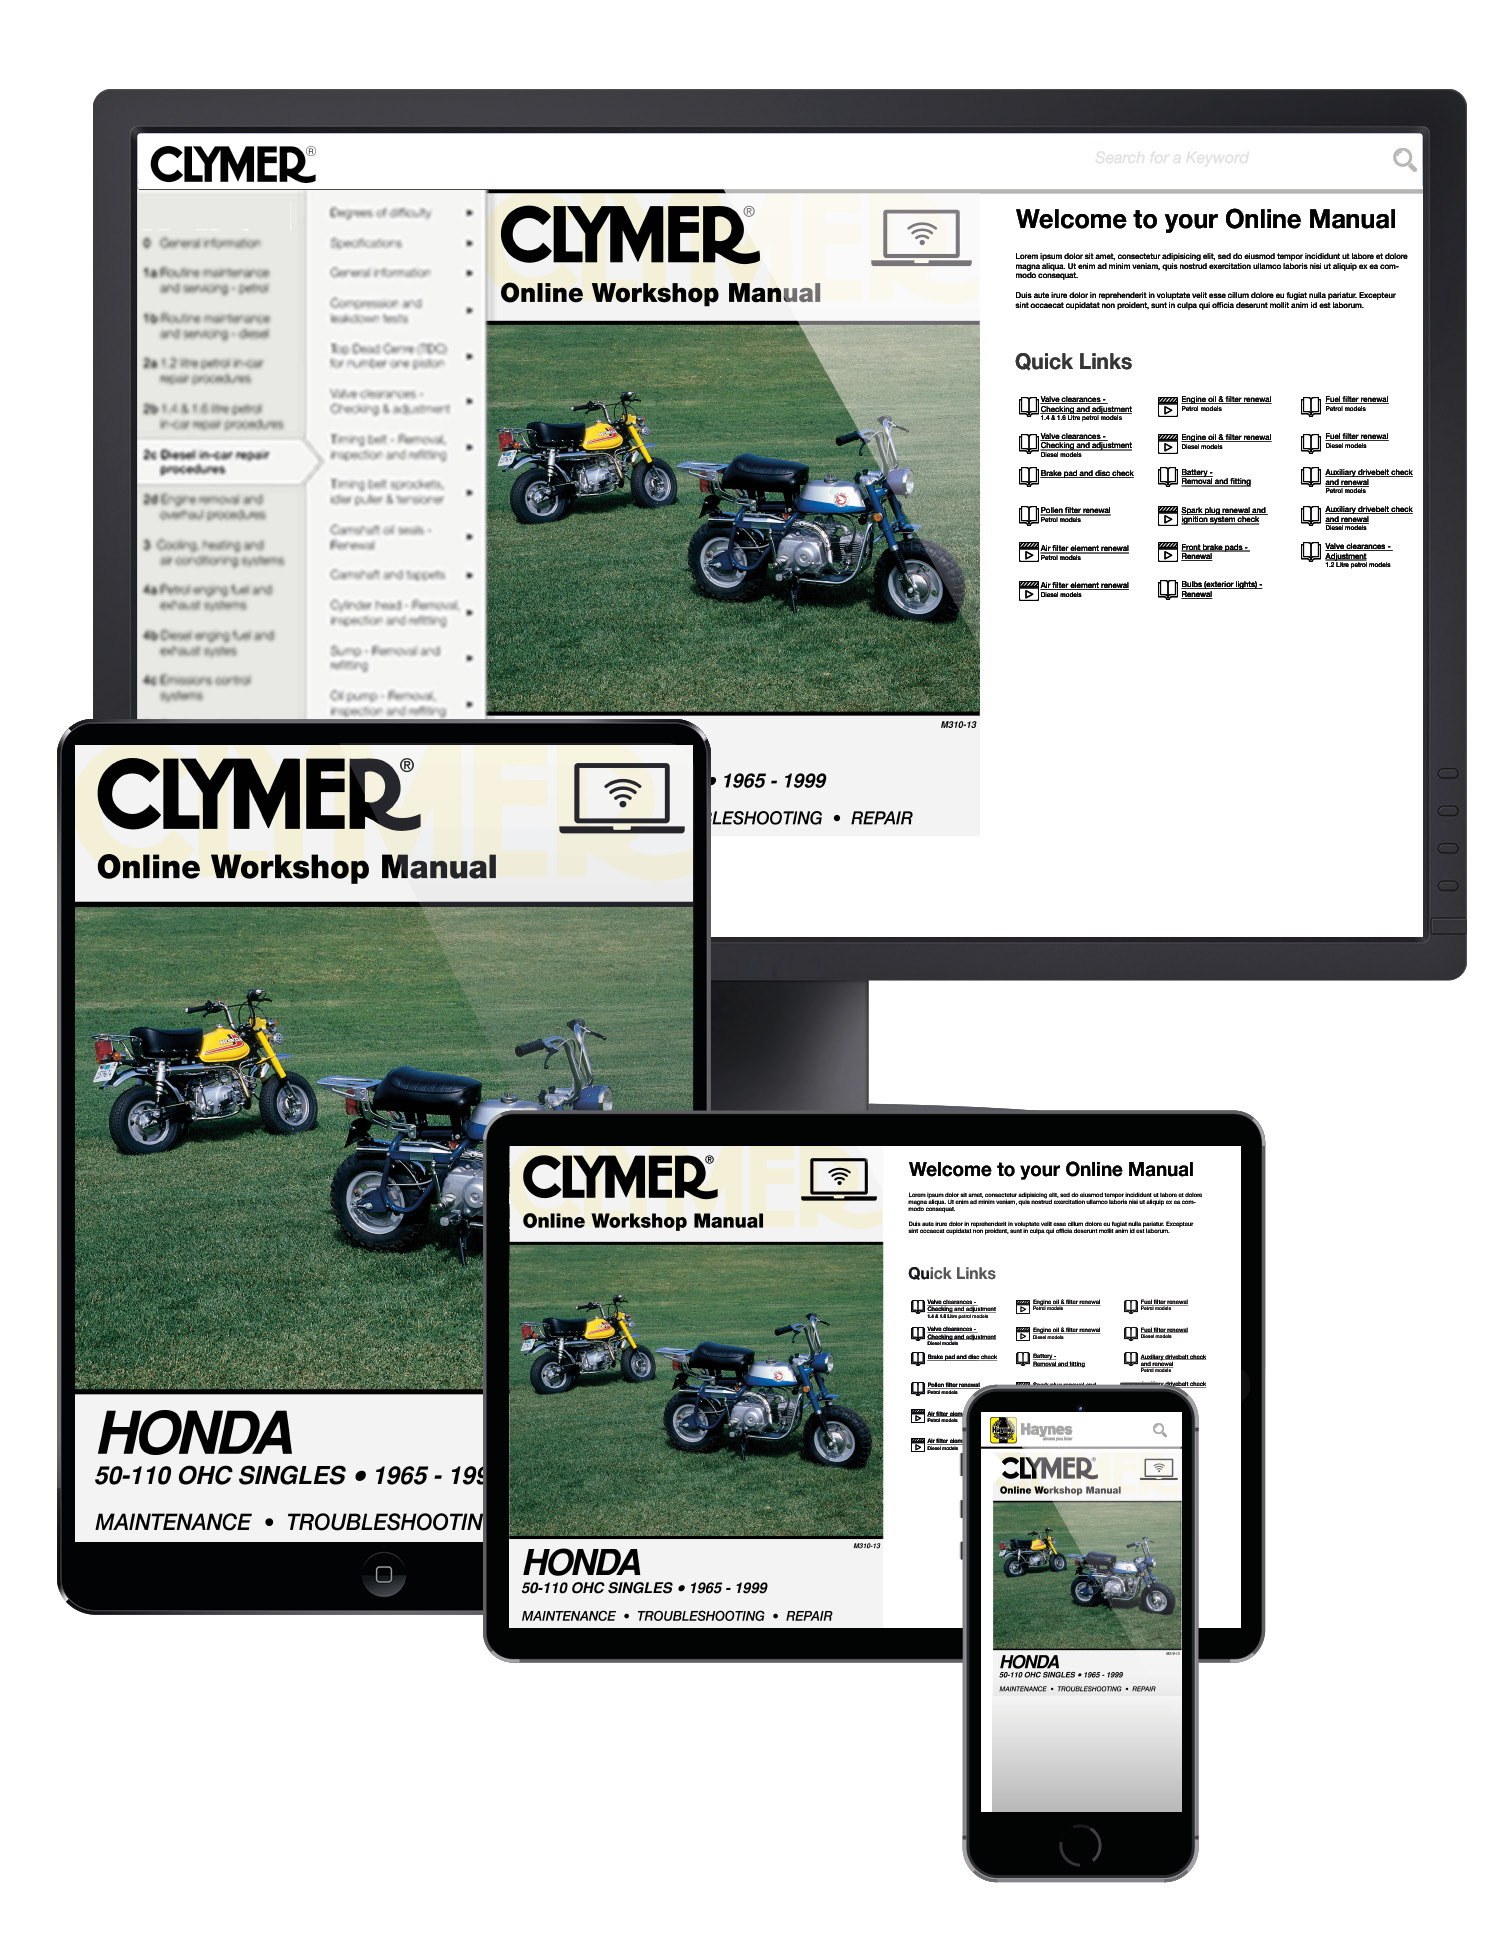 Manual cover for Honda 50-110cc, OHC Singles Motorcycle (1965-1999) Clymer Online Manual